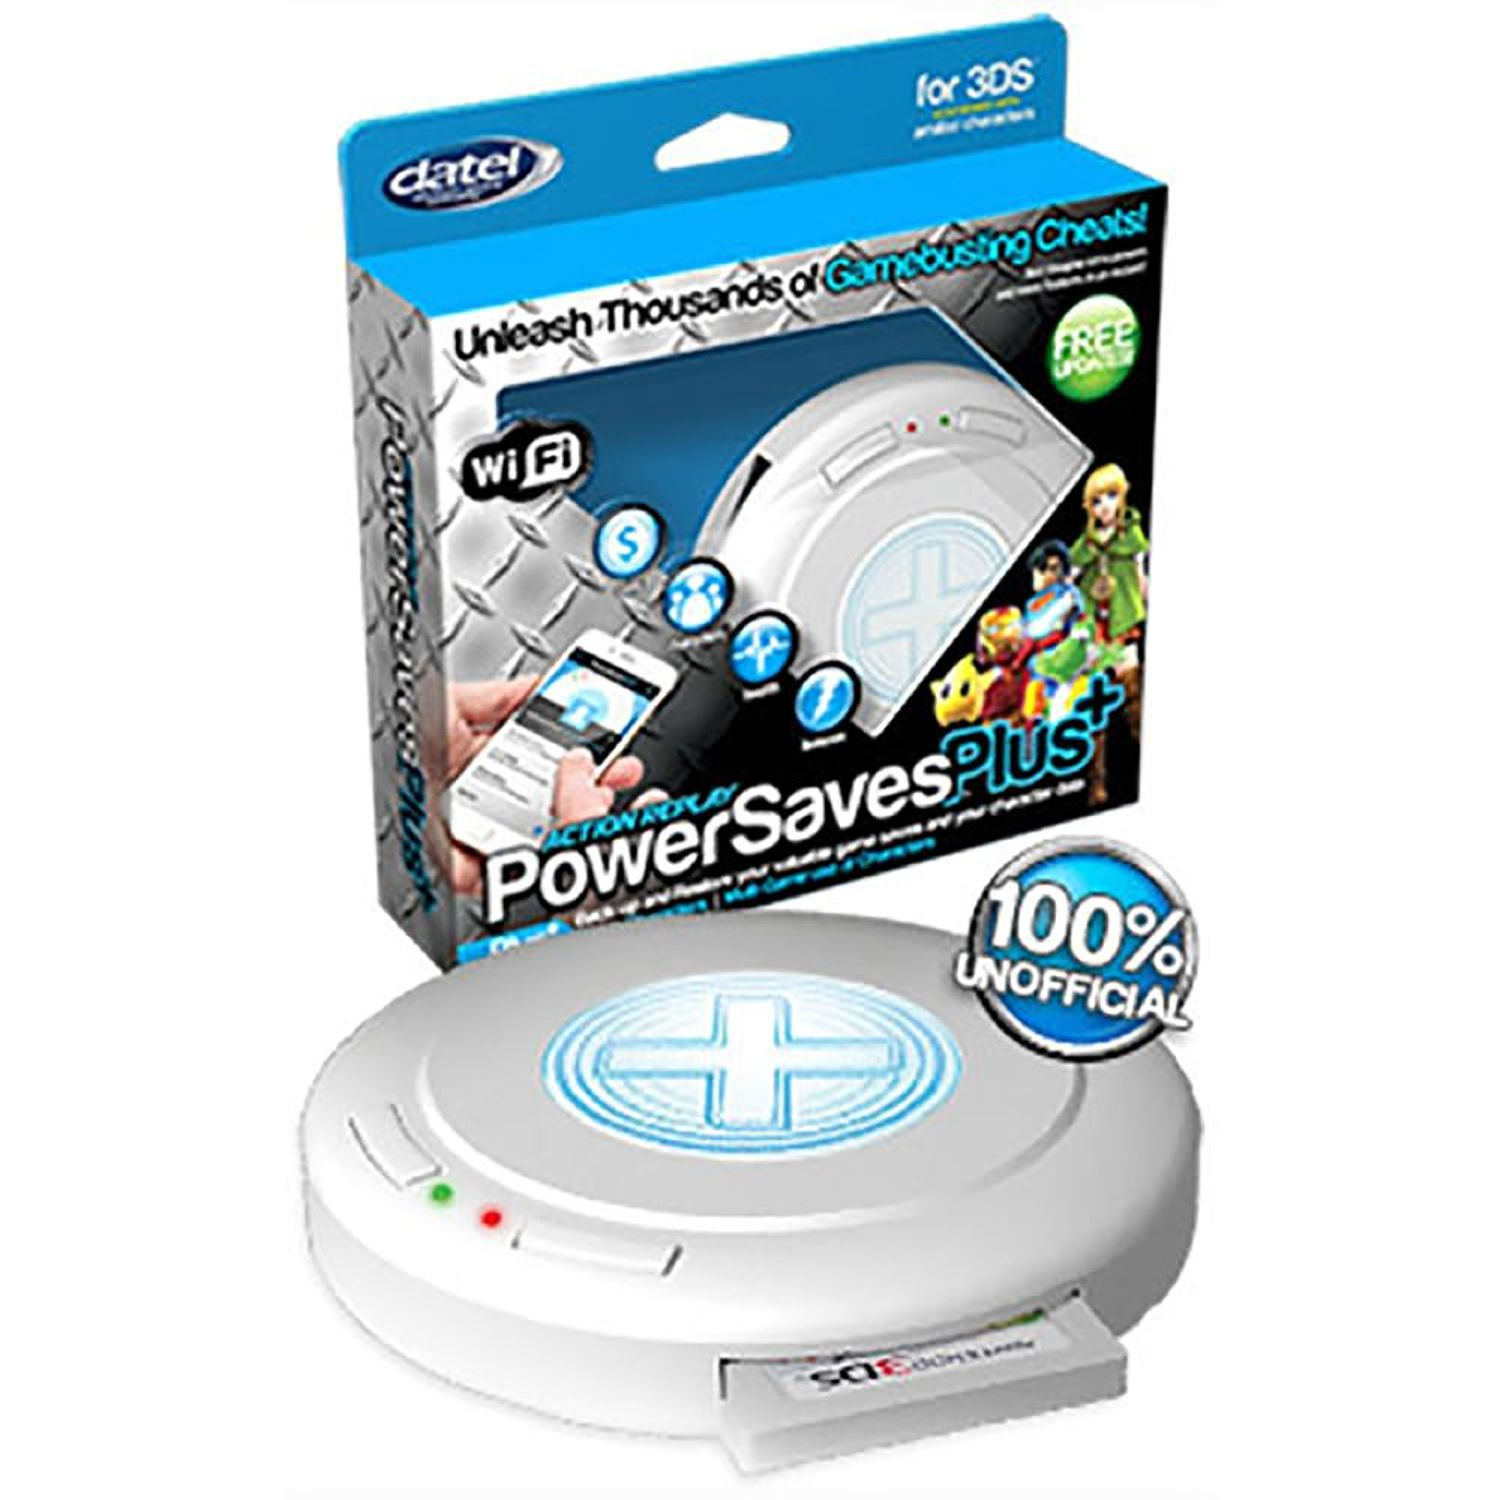 Datel Power Saves Plus Action Replay Cheat Codes For Nintendo 3DS (Wi-Fi)